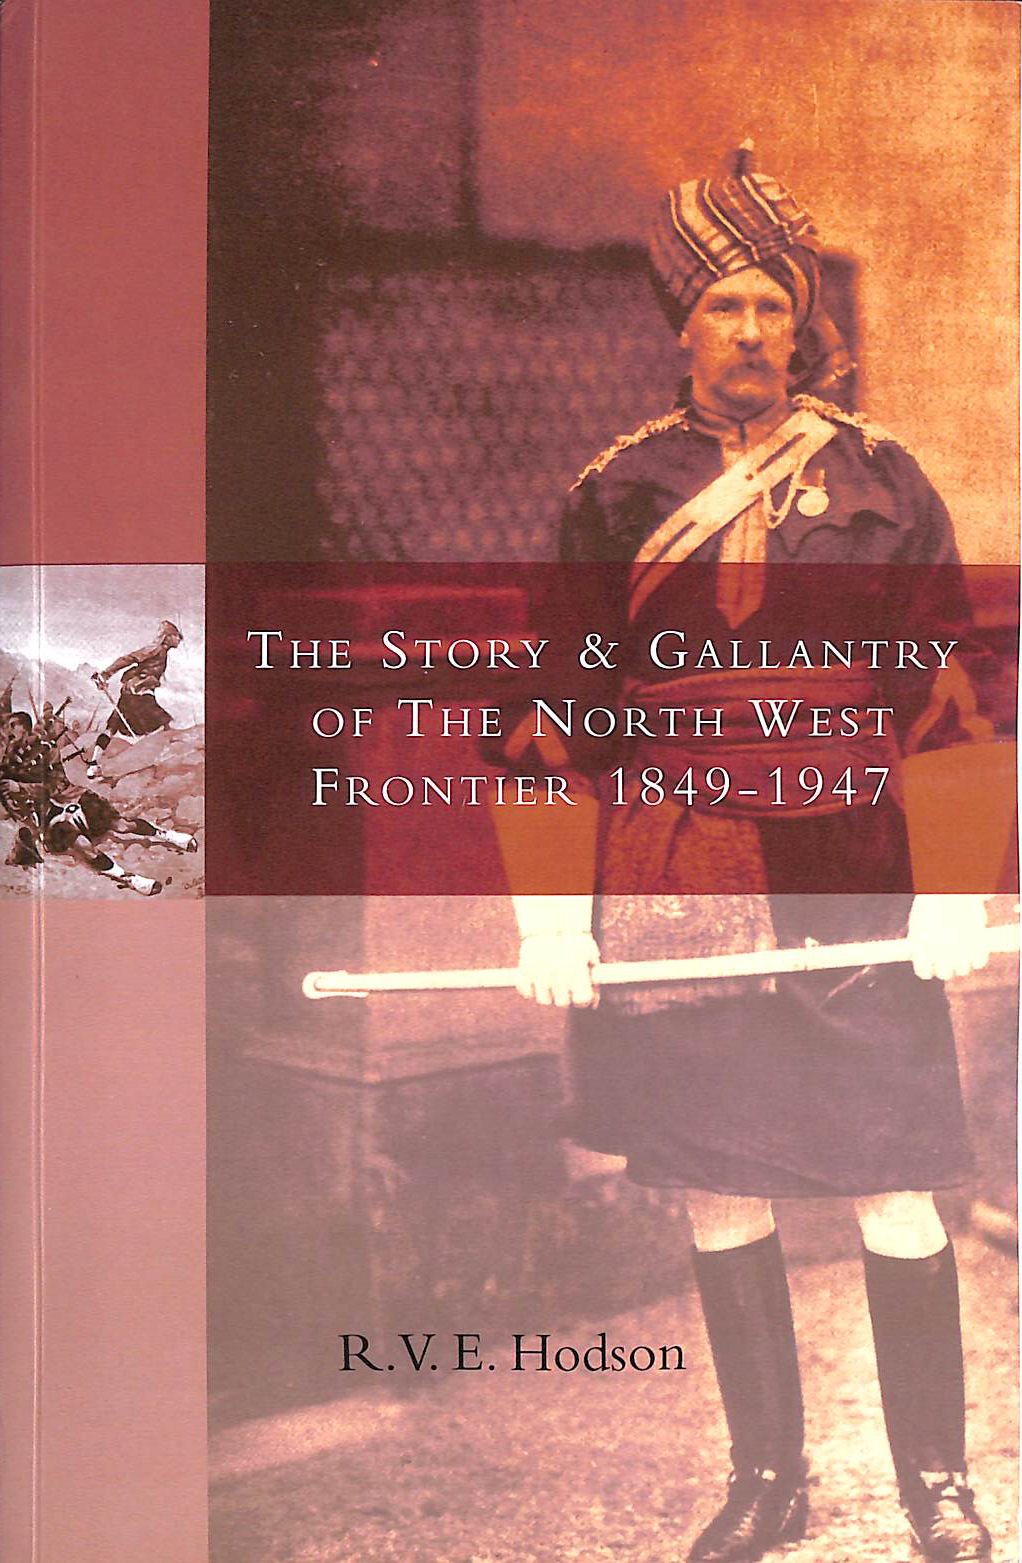 The Story and Gallantry of the North West Frontier 1849-1947, Vivian, Robert; Hobson, Eric; England, Susan Patricia [Editor]